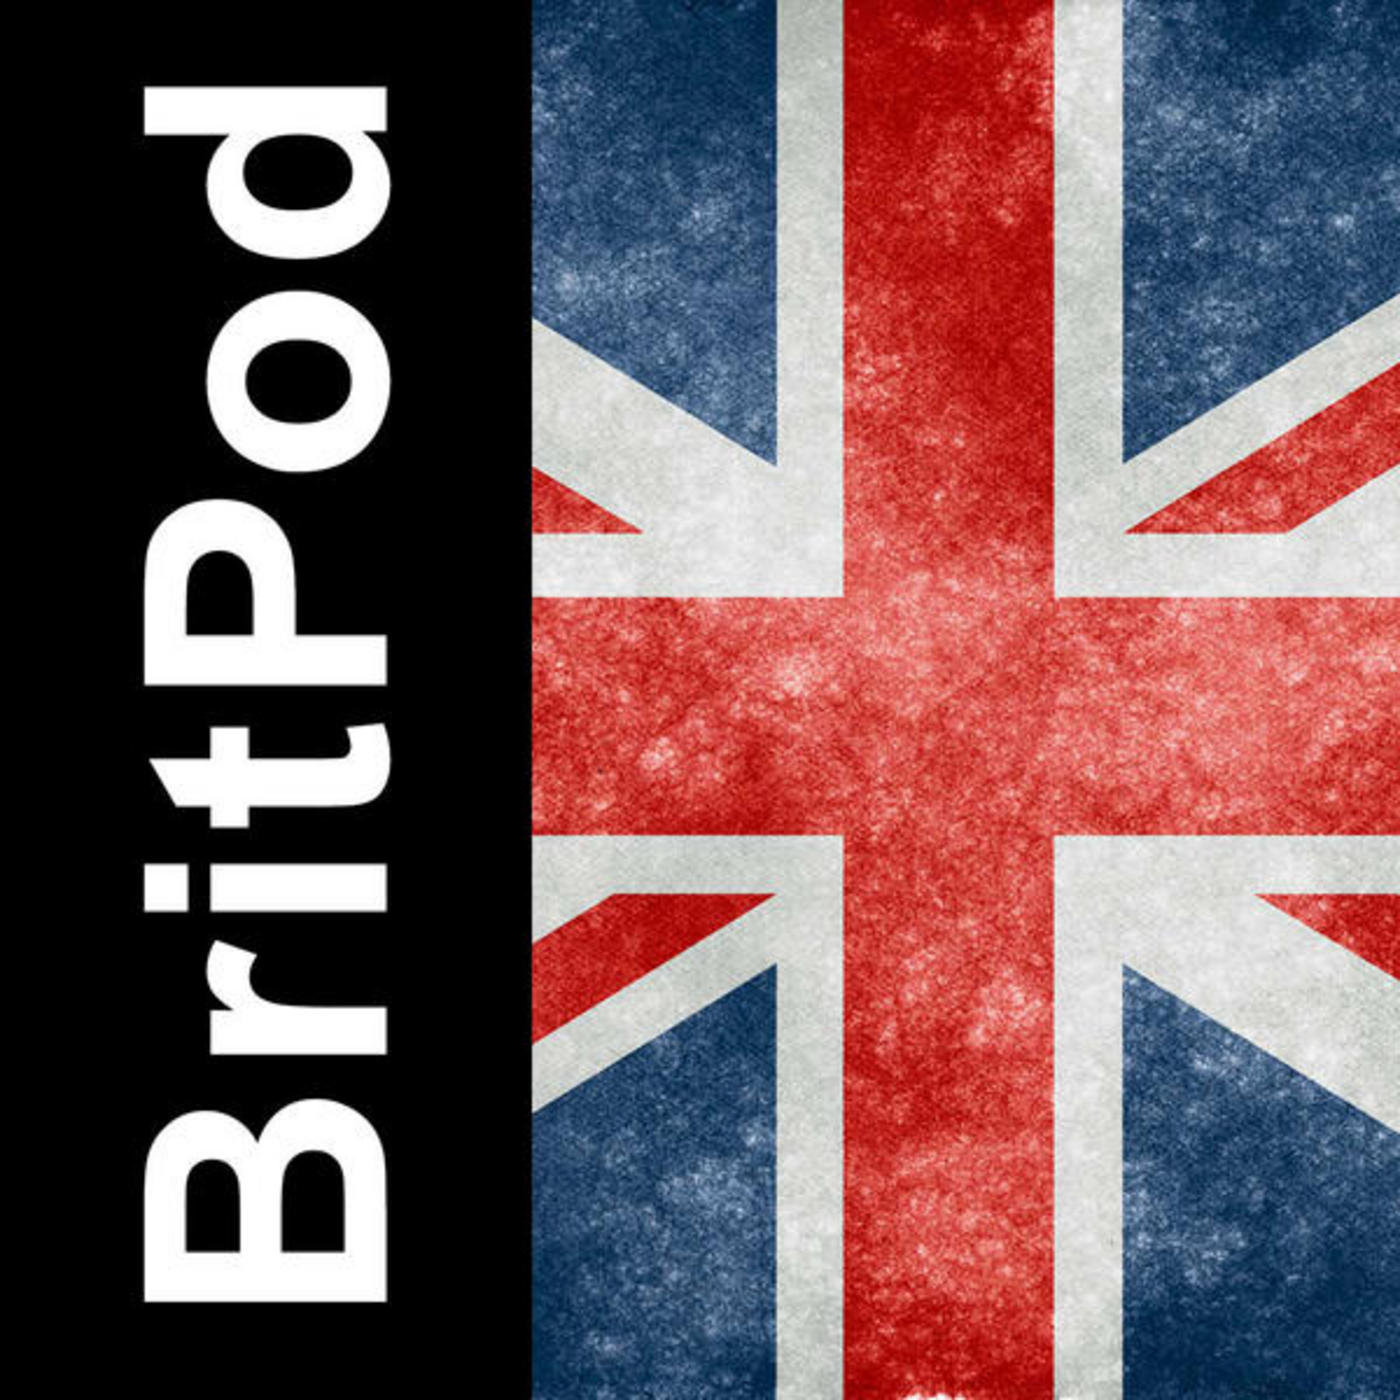 BritPod 85: Recorded on May 10th, 2011